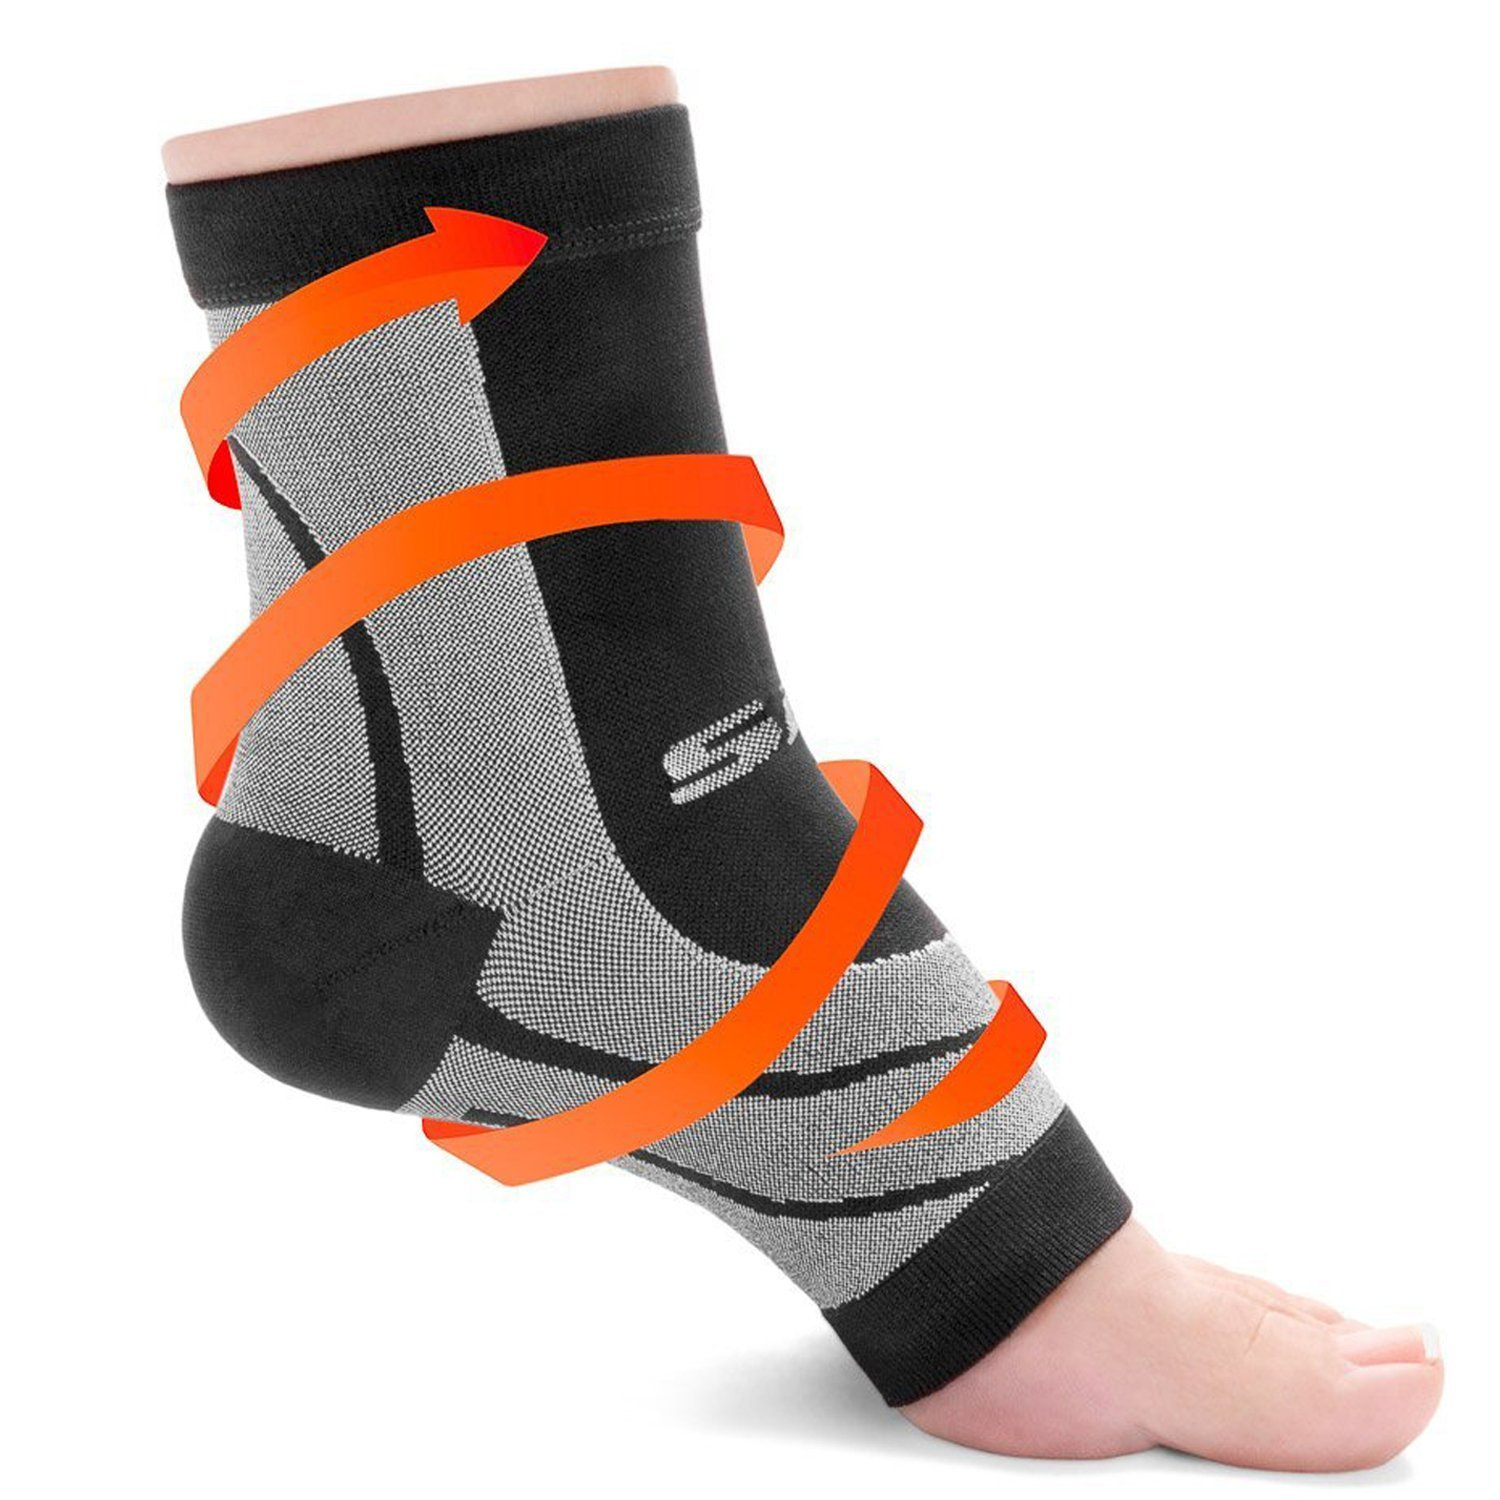 SLS3 Compression Ankle Plantar Fasciitis Sleeves - Black - S (M6-8/W7-9)